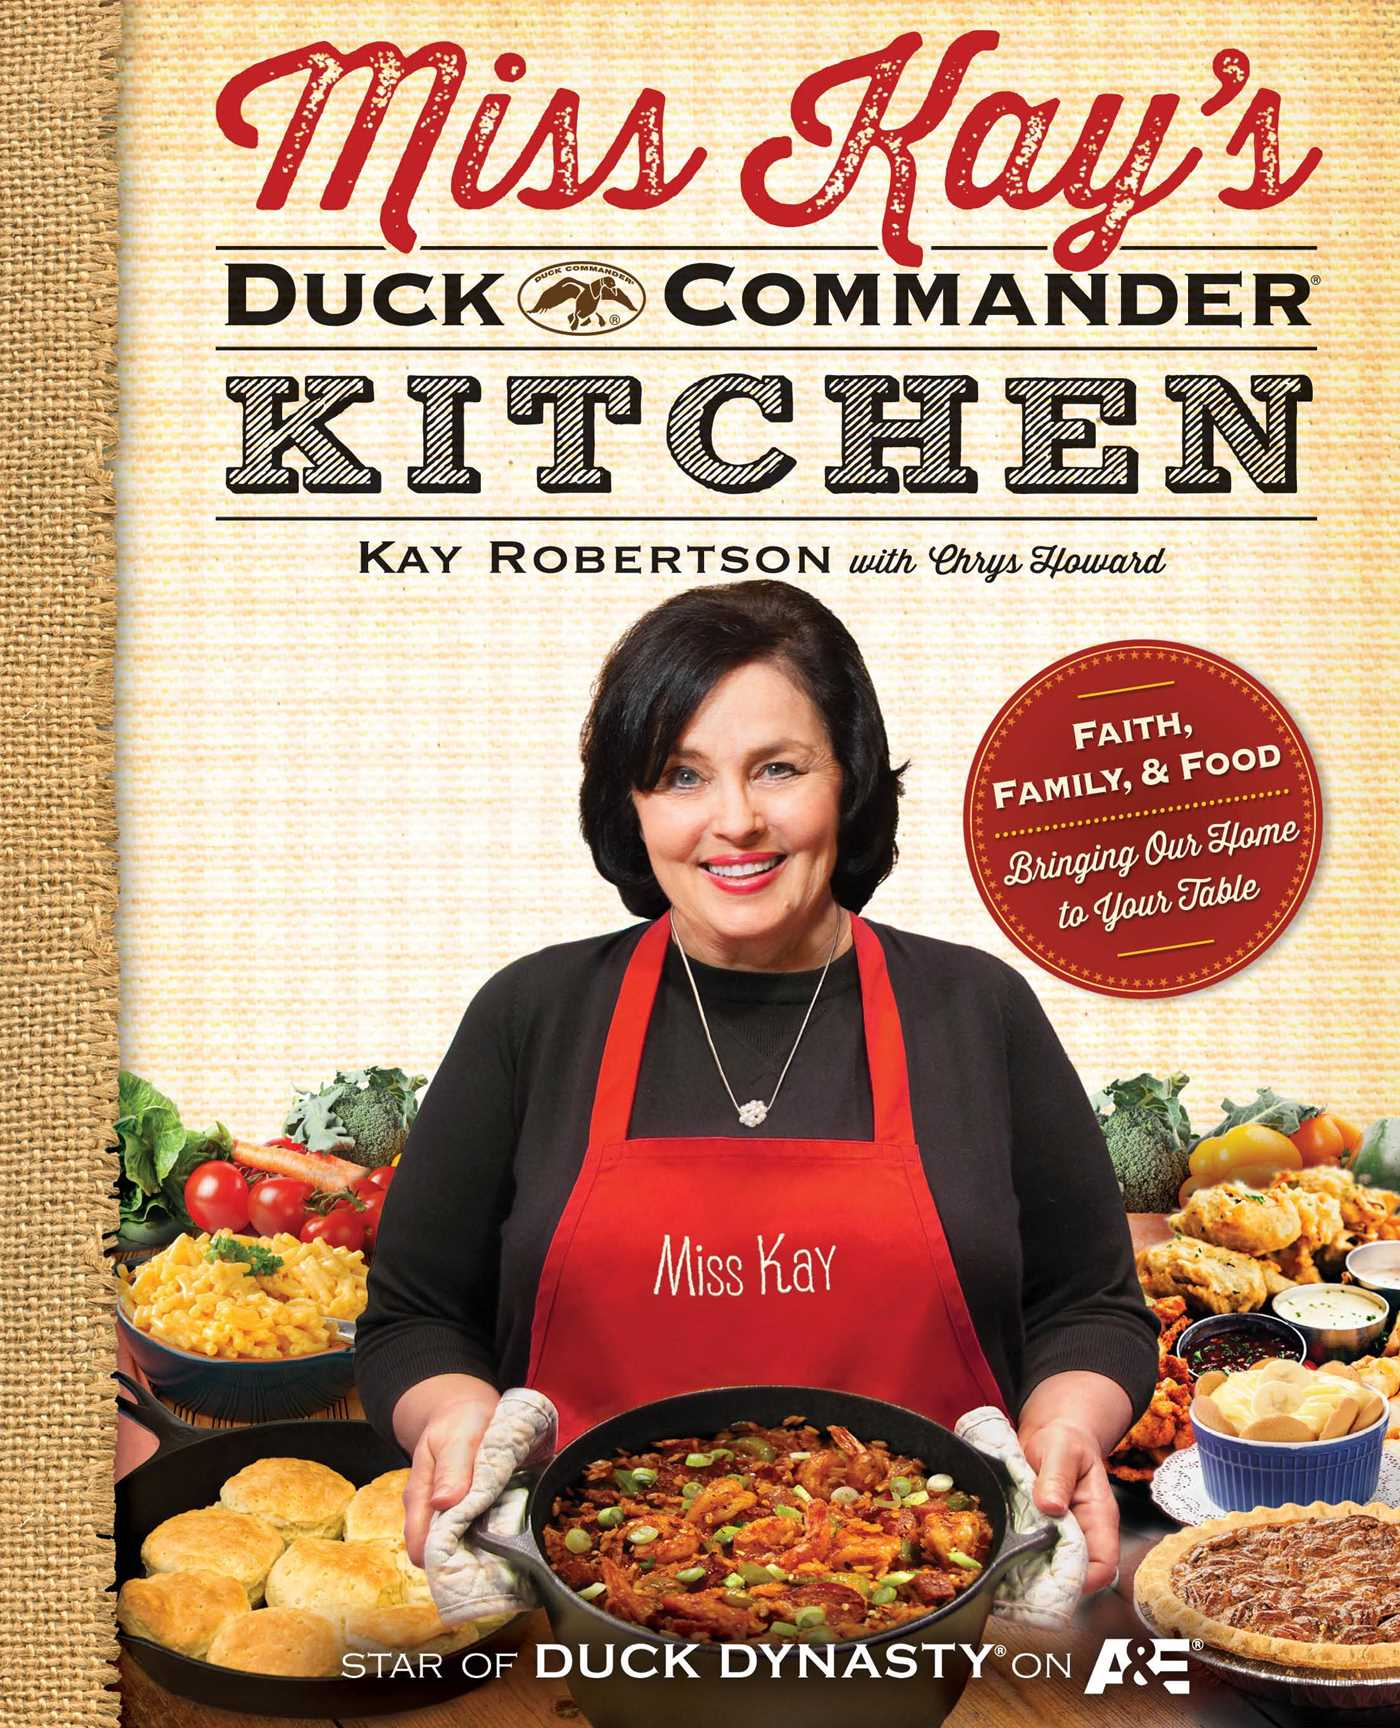 Miss kays duck commander kitchen 9781476745138 hr